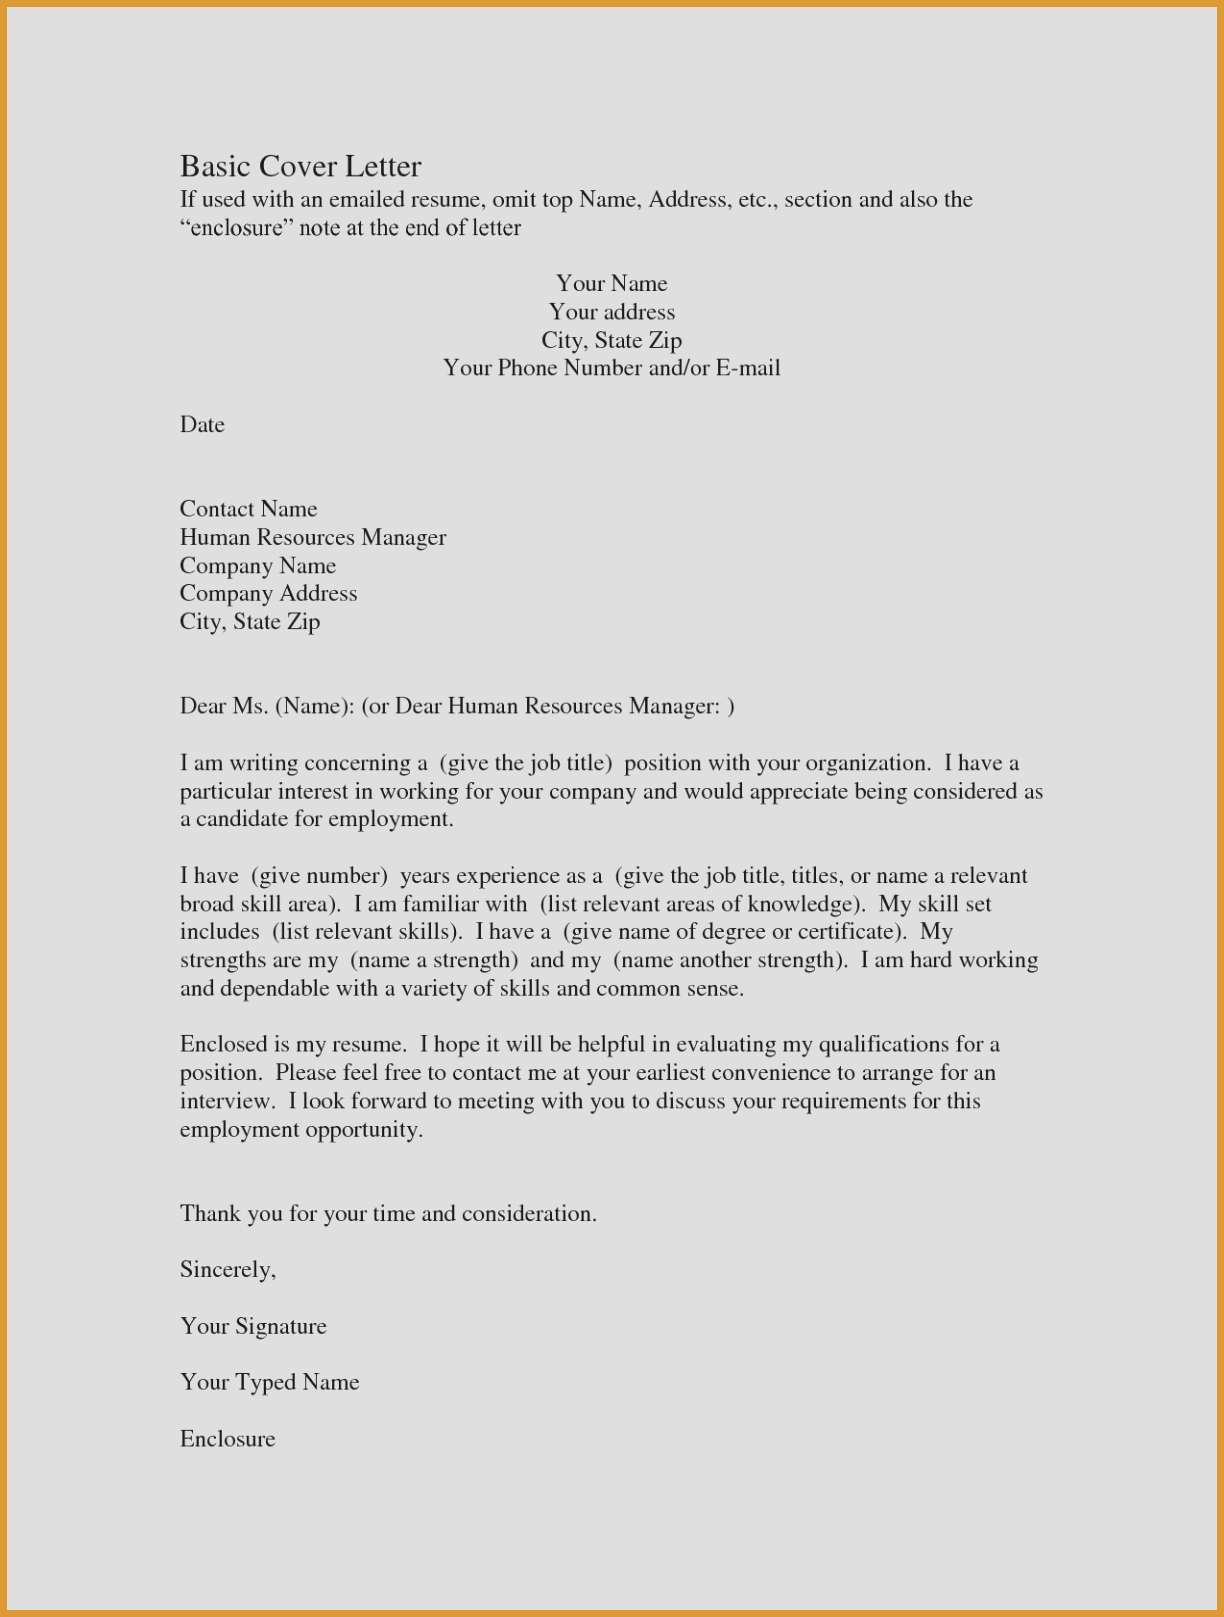 Quick Cover Letter Template - Basic Cover Letters for Resumes Example Cover Letter for Resume